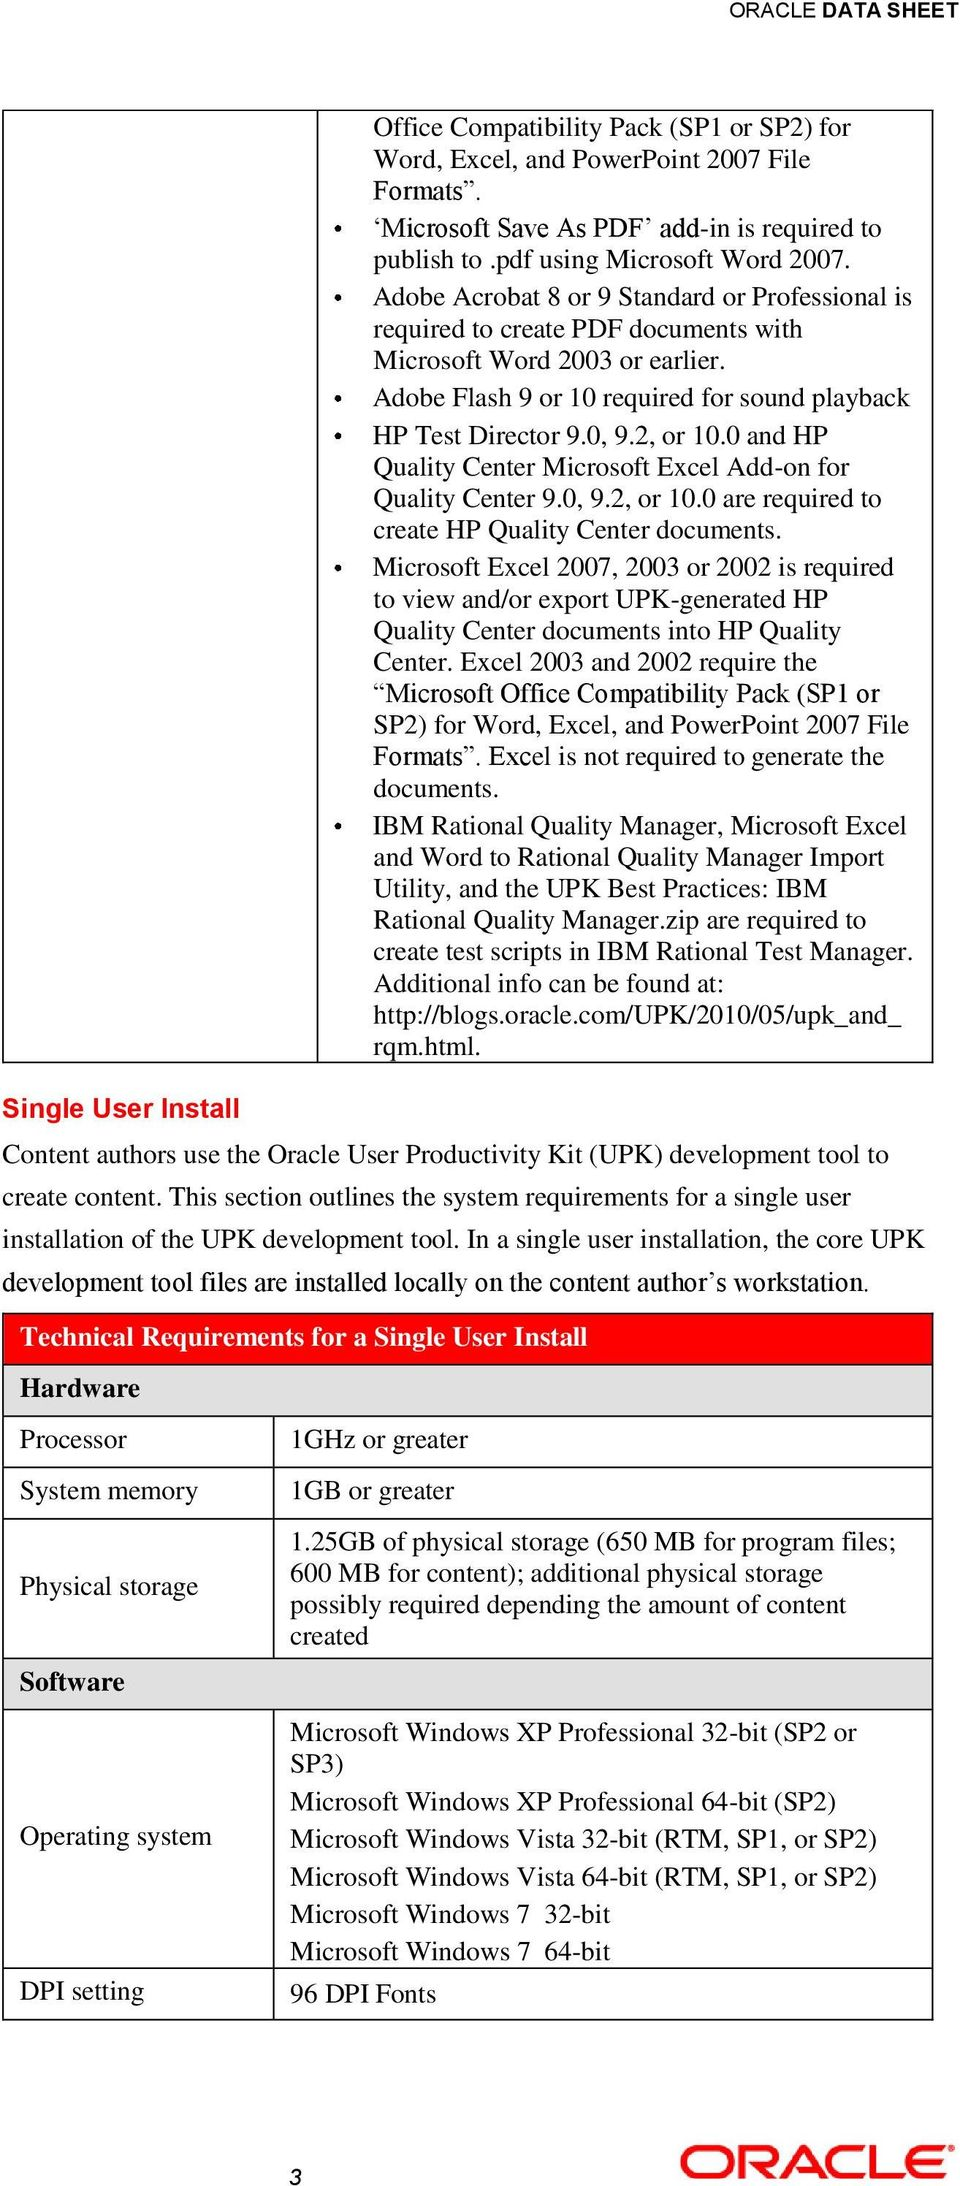 0 and HP Quality Center Microsoft Excel Add-on for Quality Center 9.0, 9.2, or 10.0 are required to create HP Quality Center documents.